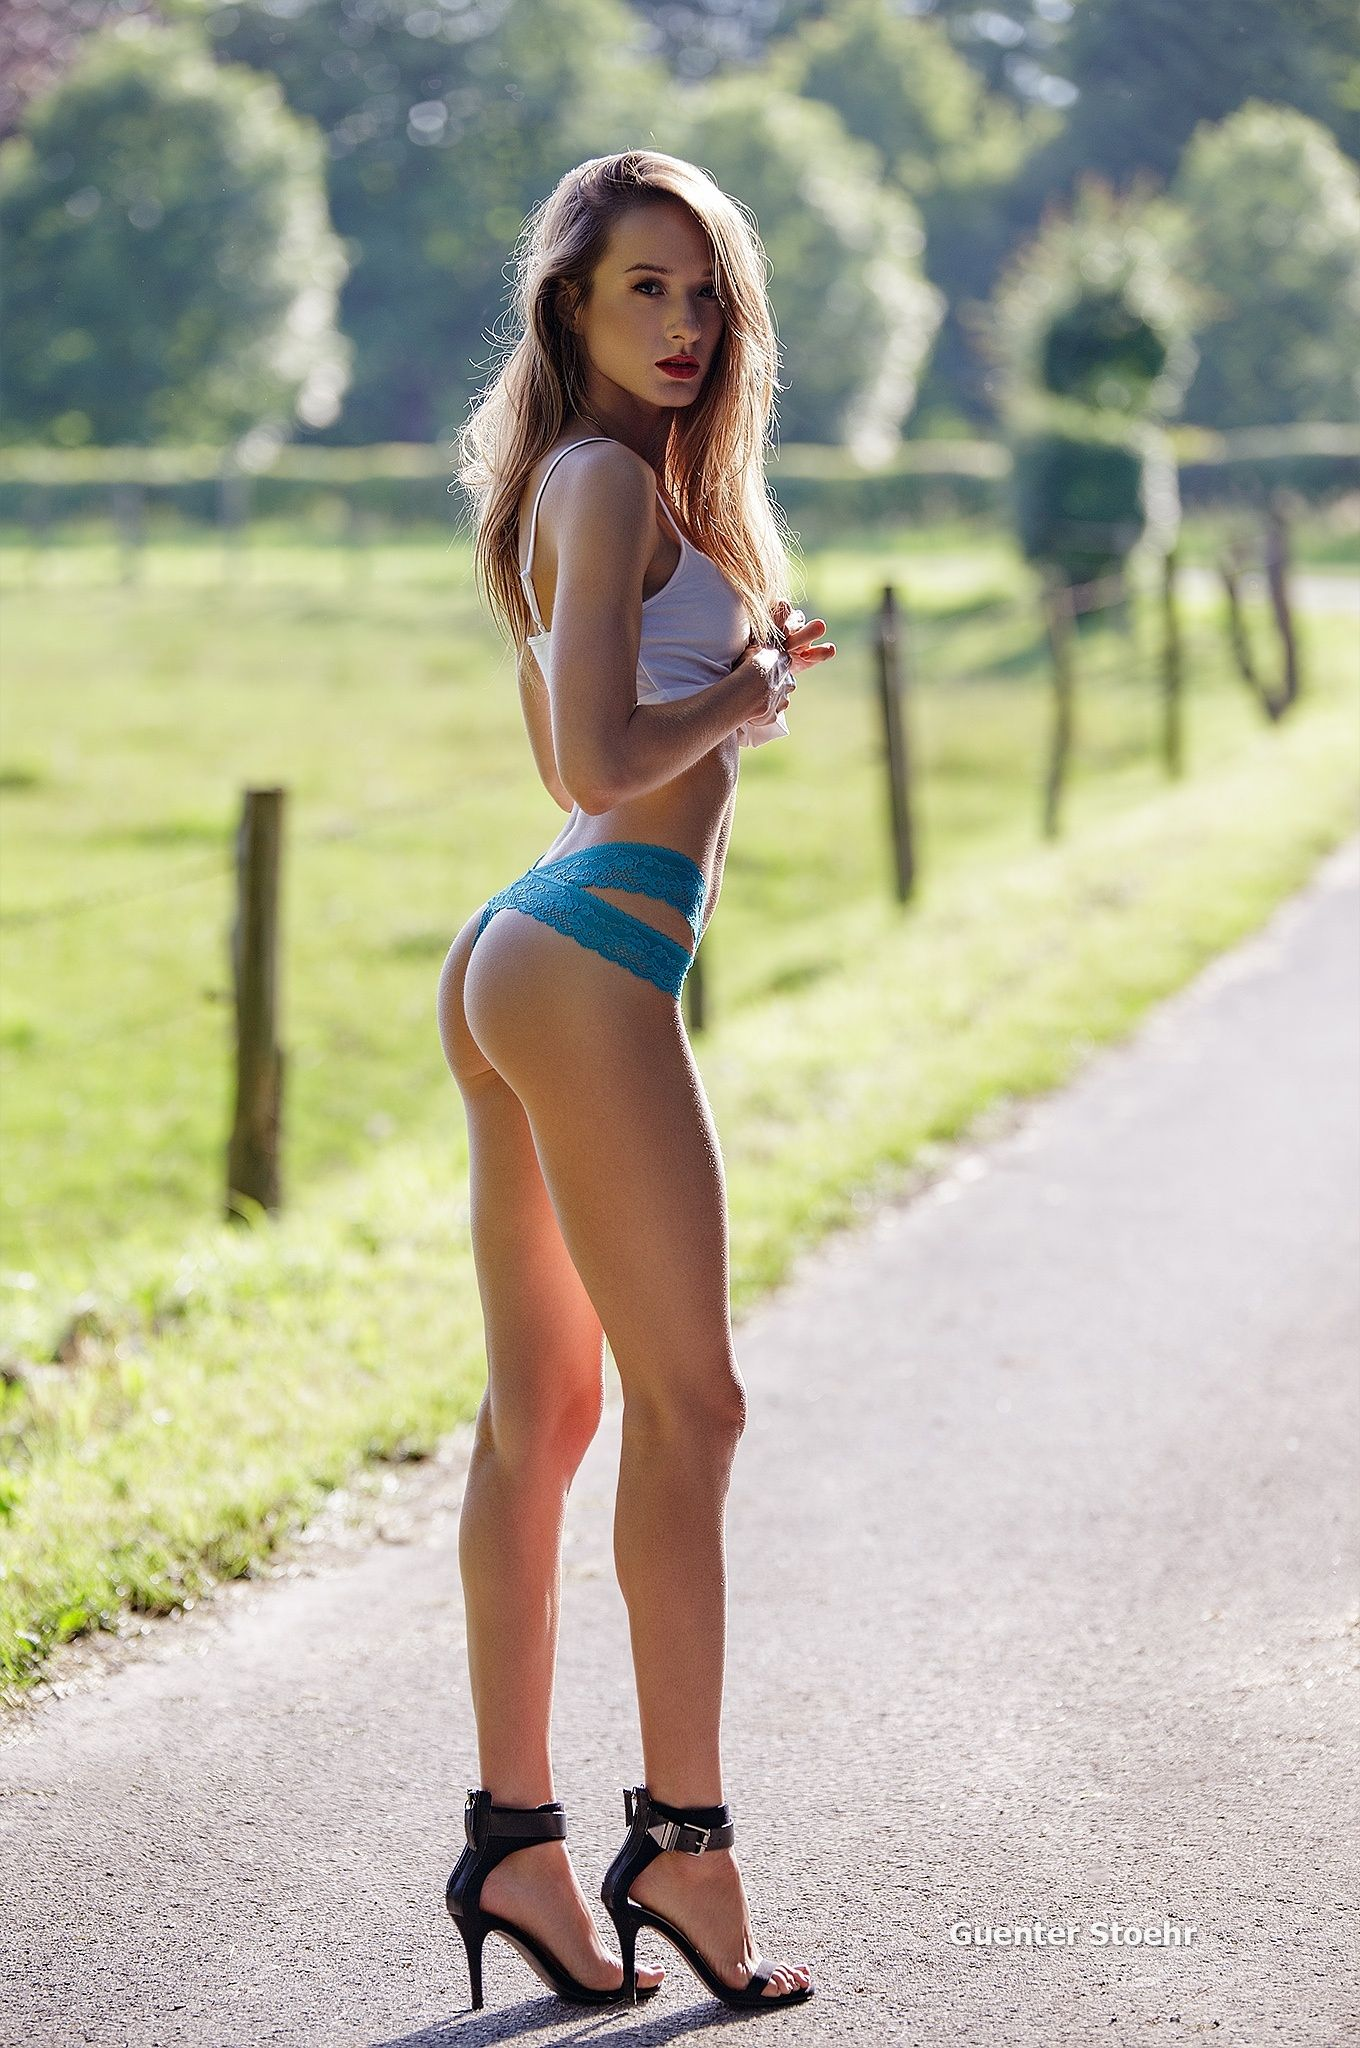 Best longest legs images on pinterest beautiful women